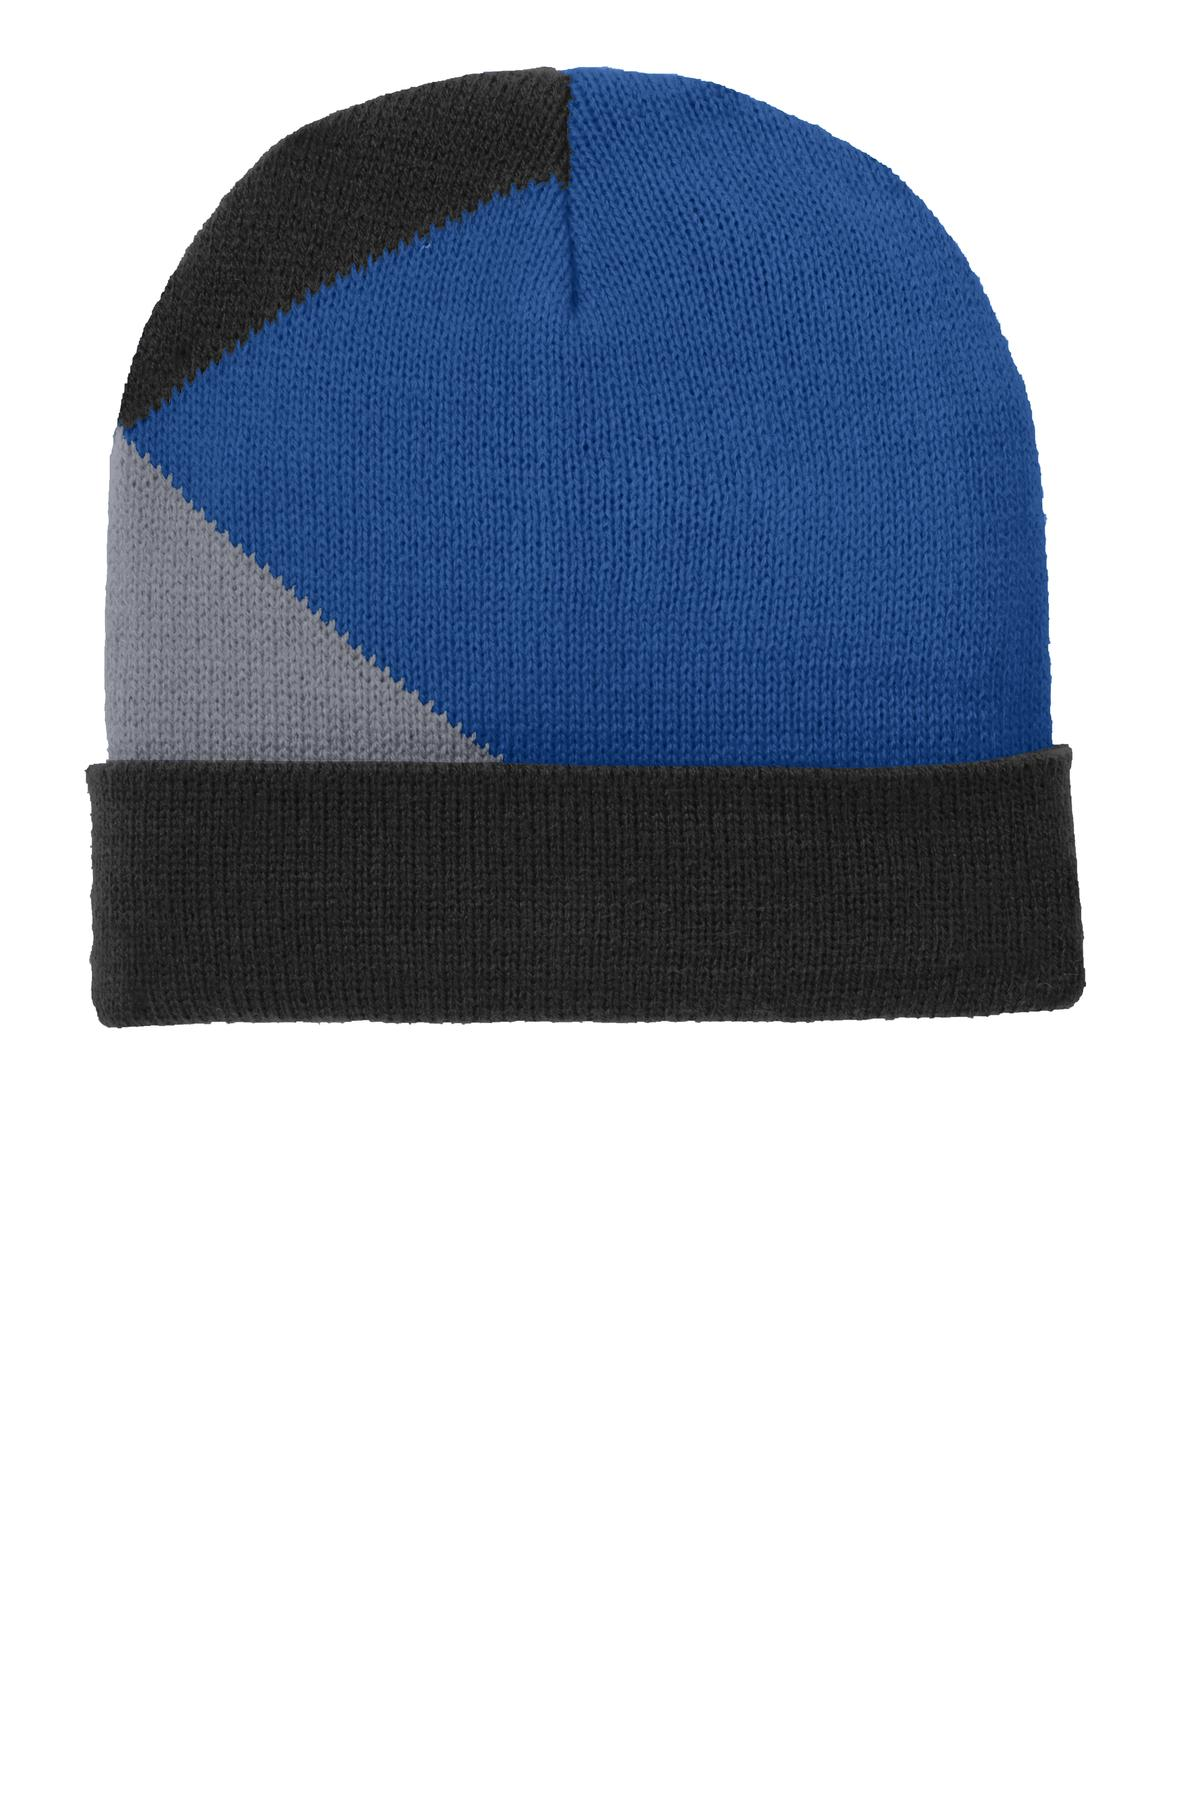 Port Authority ®  Cuffed Colorblock Beanie. C906